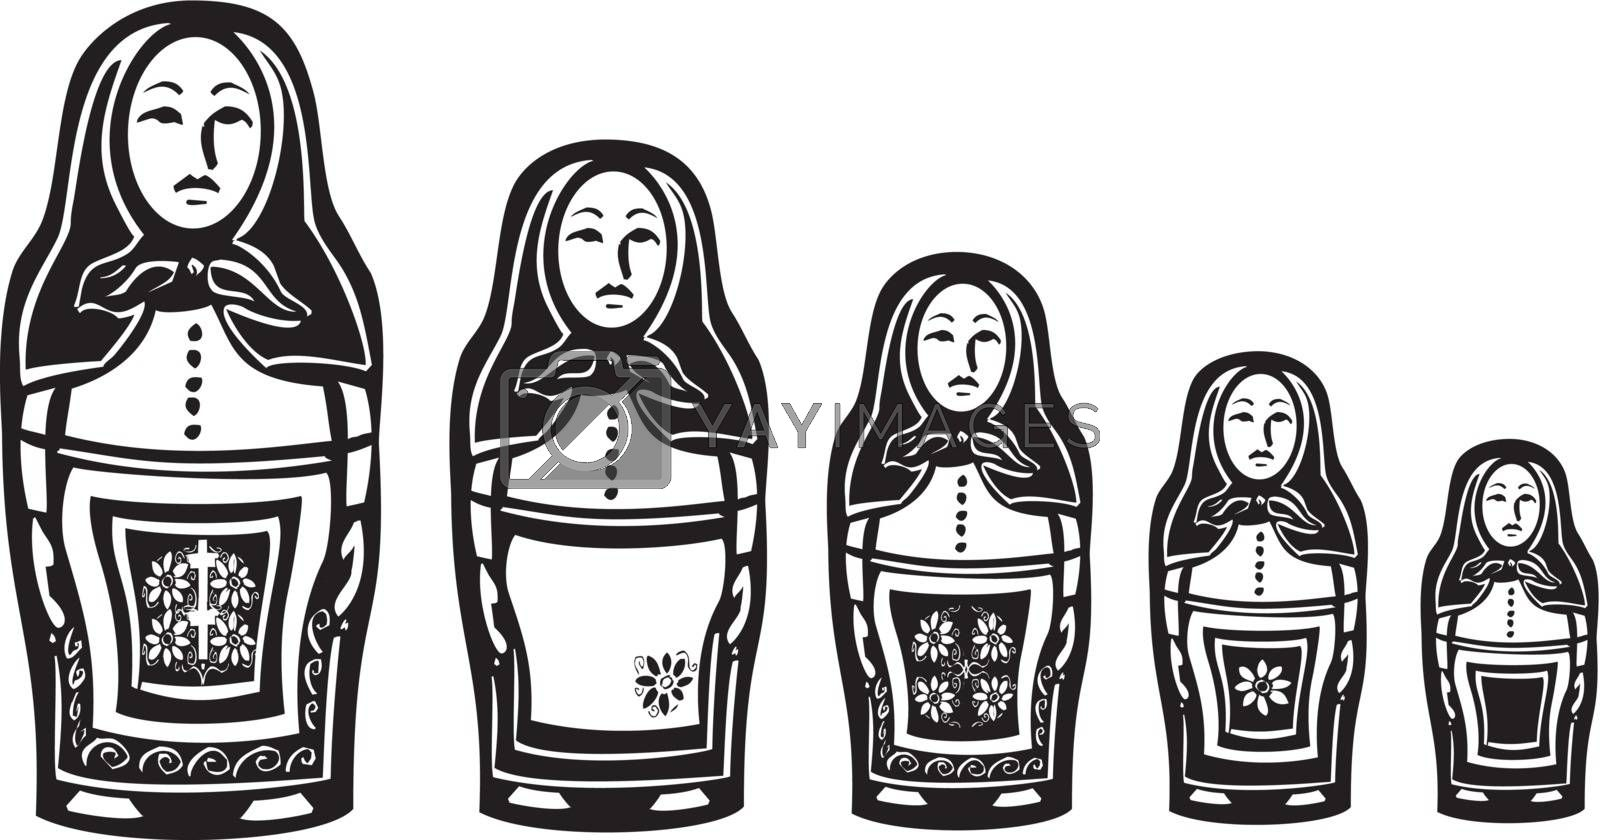 woodcut style image of a series of Russian nested dolls.